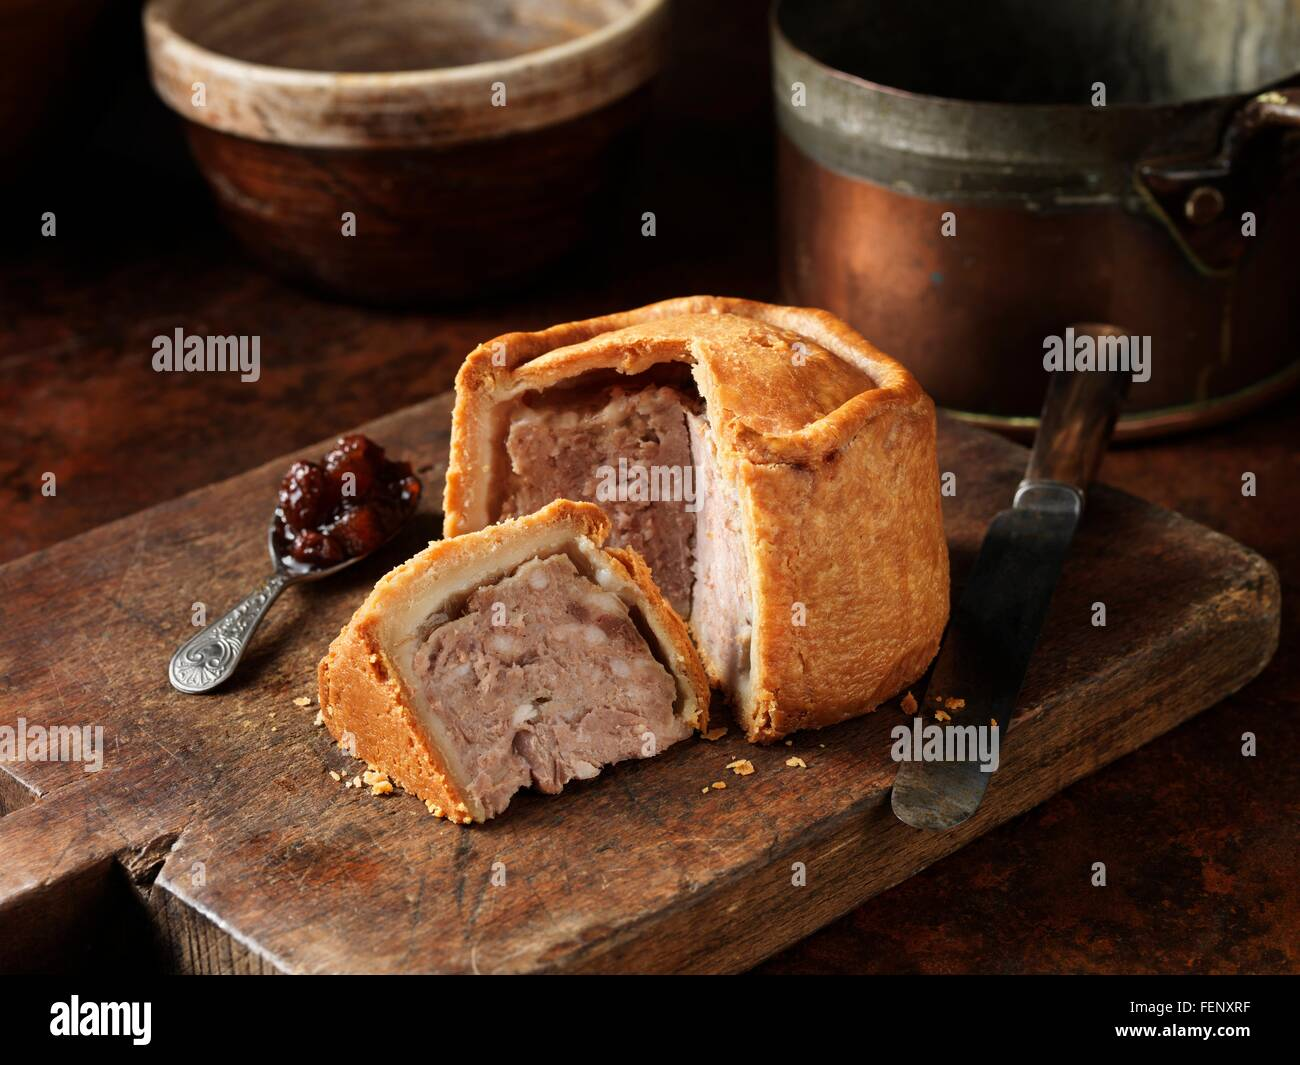 Sliced Melton Mowbray pork pie with spoonful of pickle on wooden cutting board - Stock Image